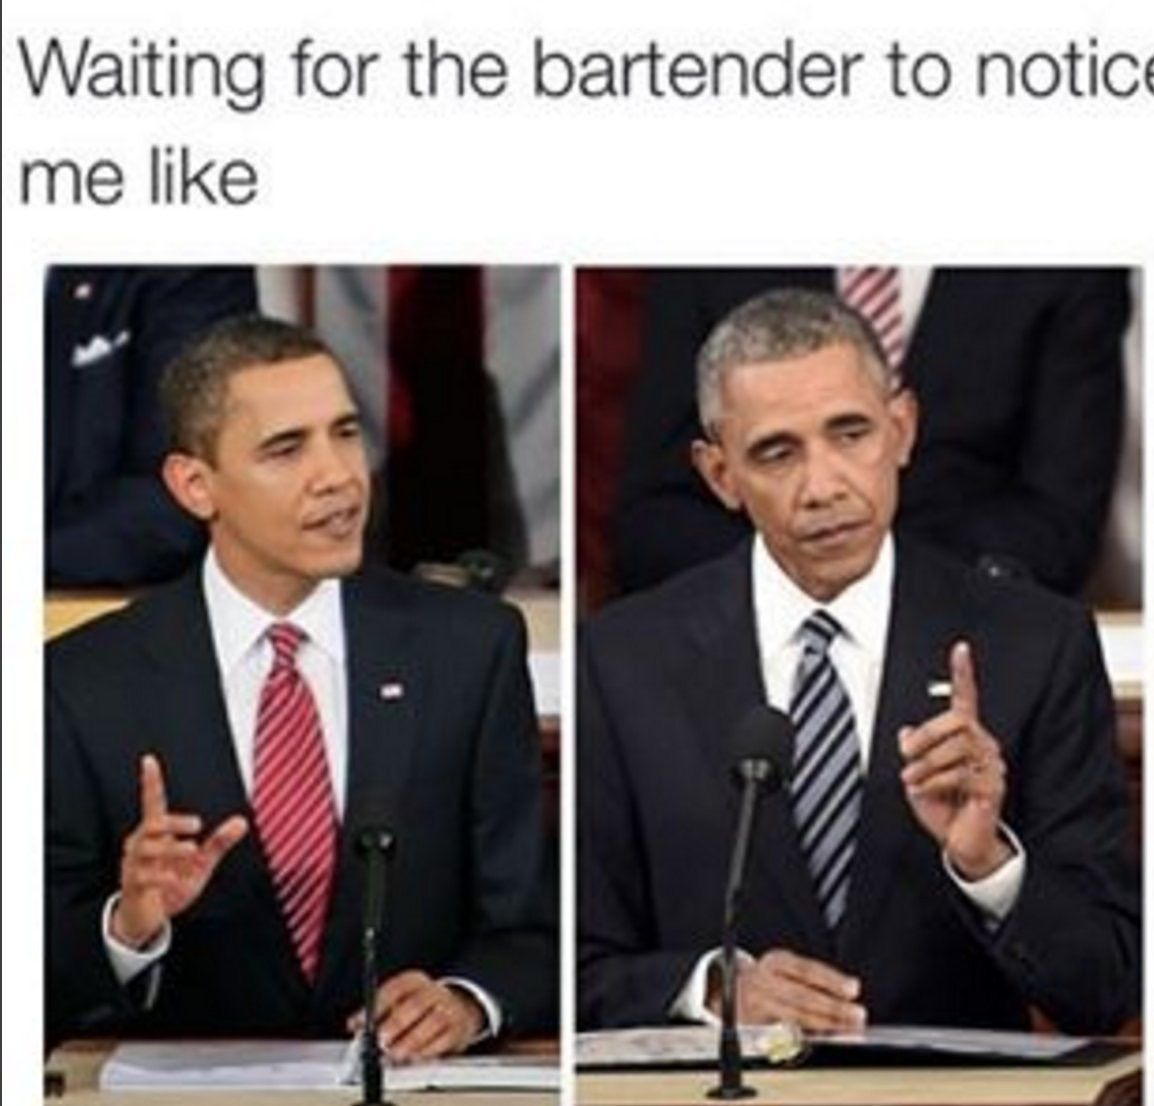 Seems to happen every time i go out to eat